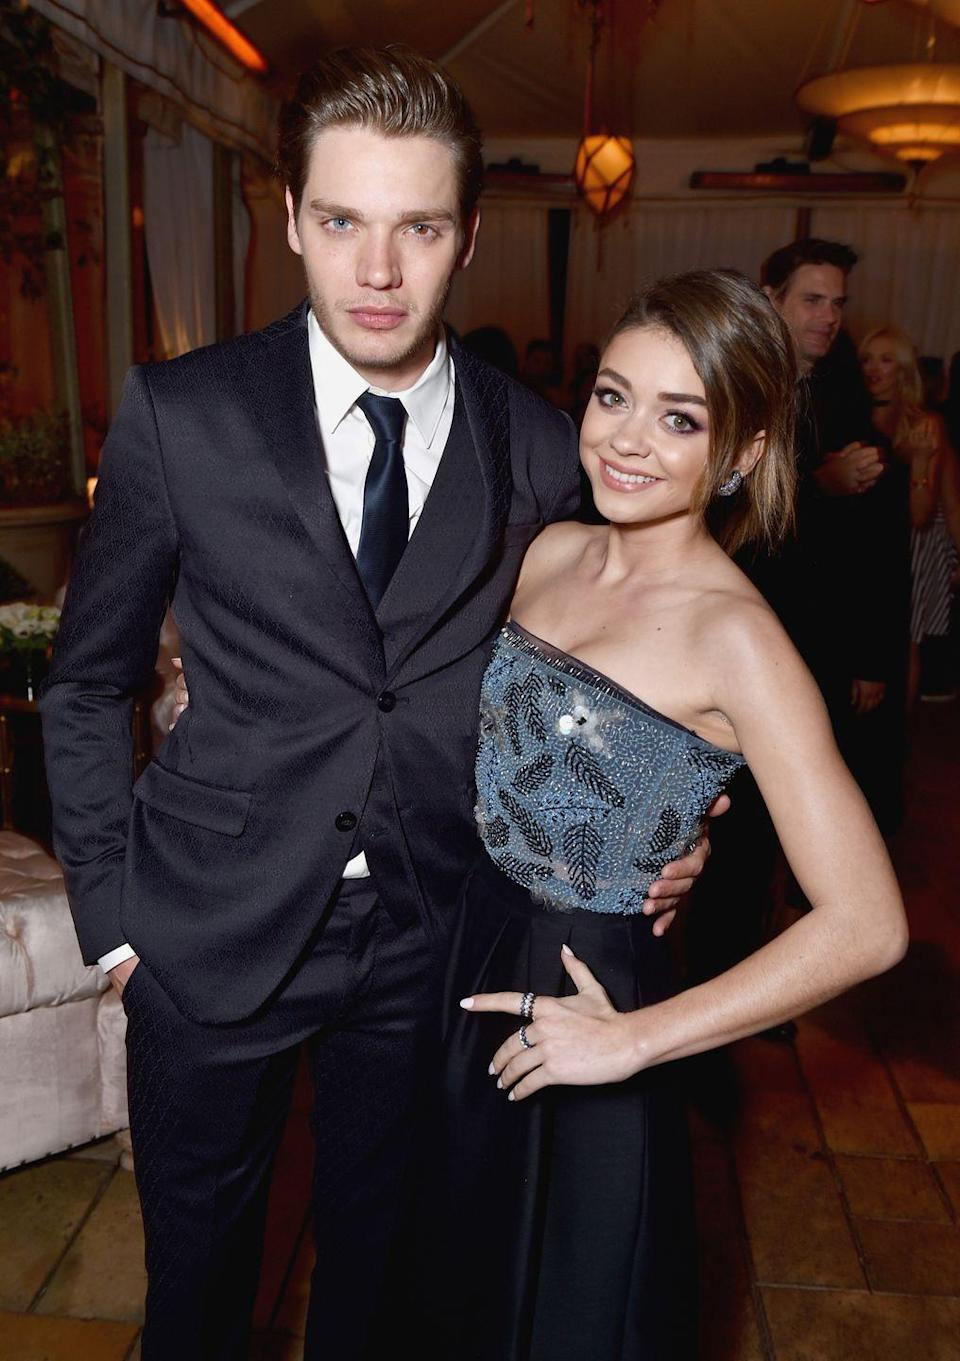 <p><em>Modern Family</em> star Sarah Hyland began dating <em>Shadowhunters'</em> Dominic Sherwood in 2015. The couple reportedly got matching arrow tattoos in the beginning of their relationship but broke up two years later. Hyland filmed two episodes of <em>Shadowhunters</em> as the Seelie Queen, but the couple broke up just weeks before the episodes aired.</p>